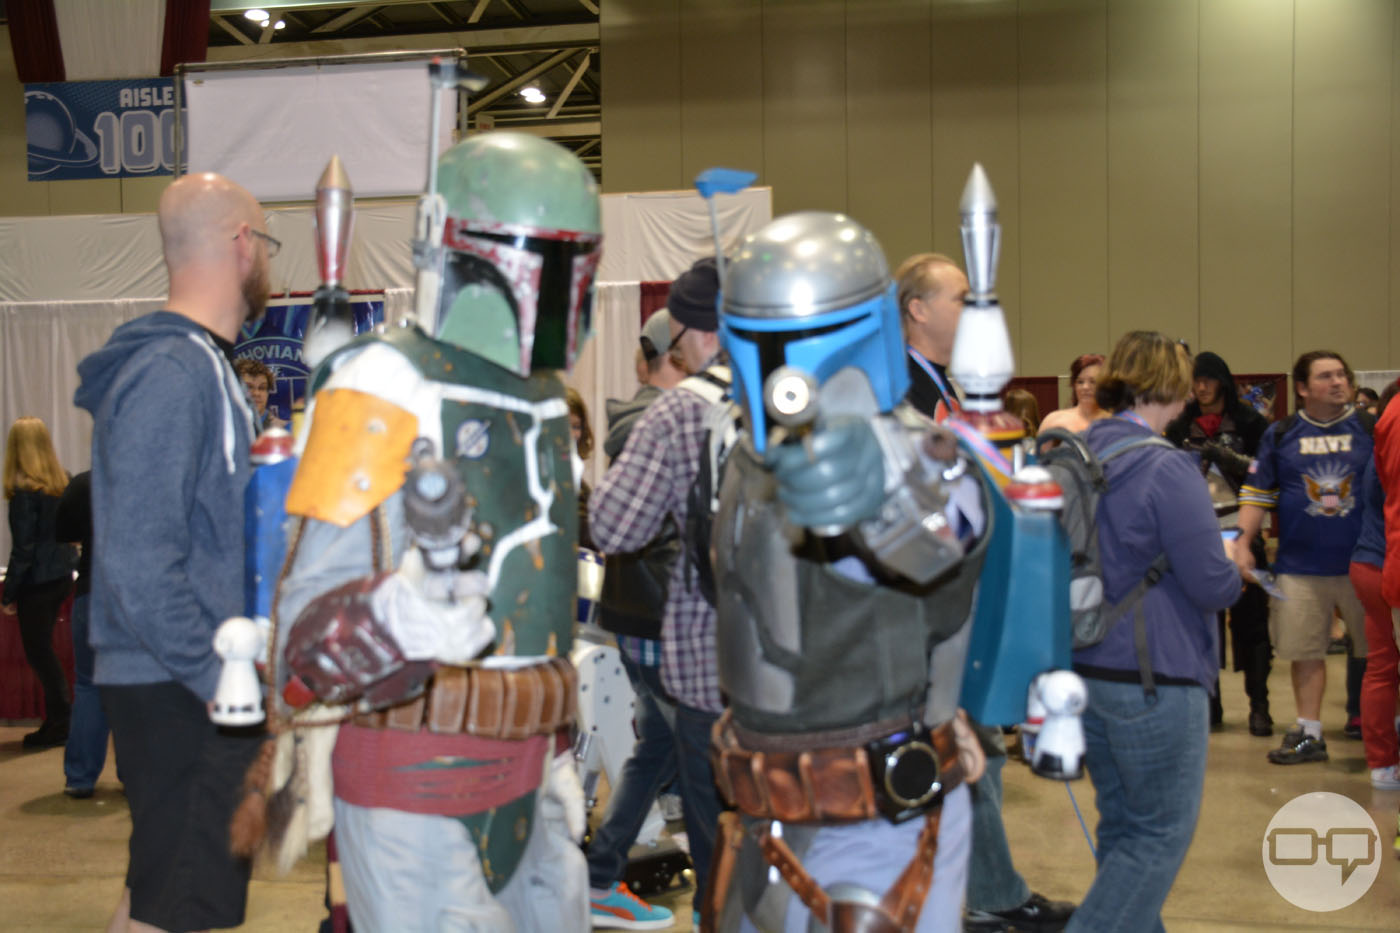 Planet-Comicon-2015-ProNerd-Cosplay-D4-13